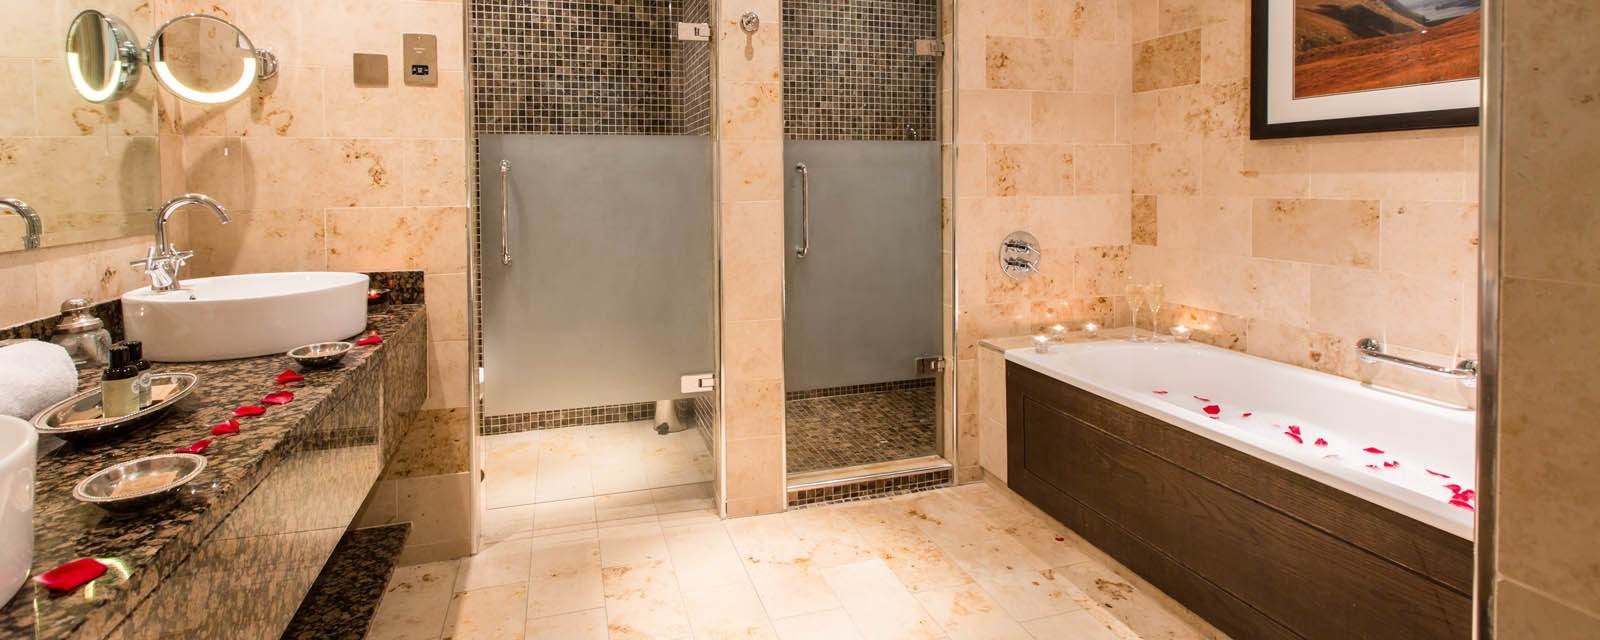 Marble Tiled Bathrooms